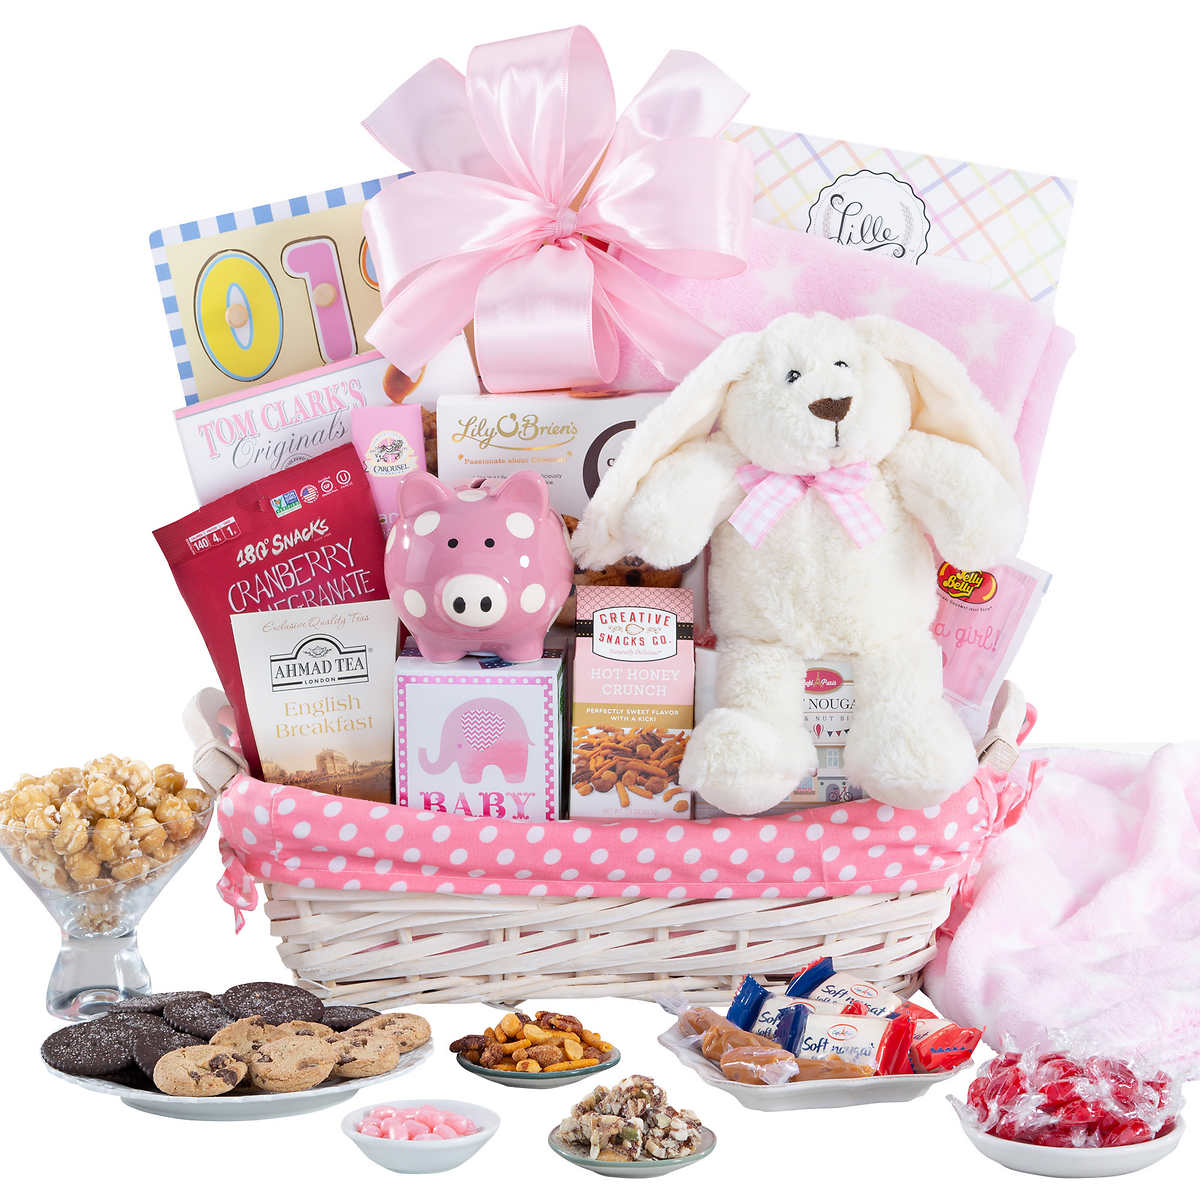 New arrival baby boy gift basket member only item new arrival baby girl gift basket negle Image collections